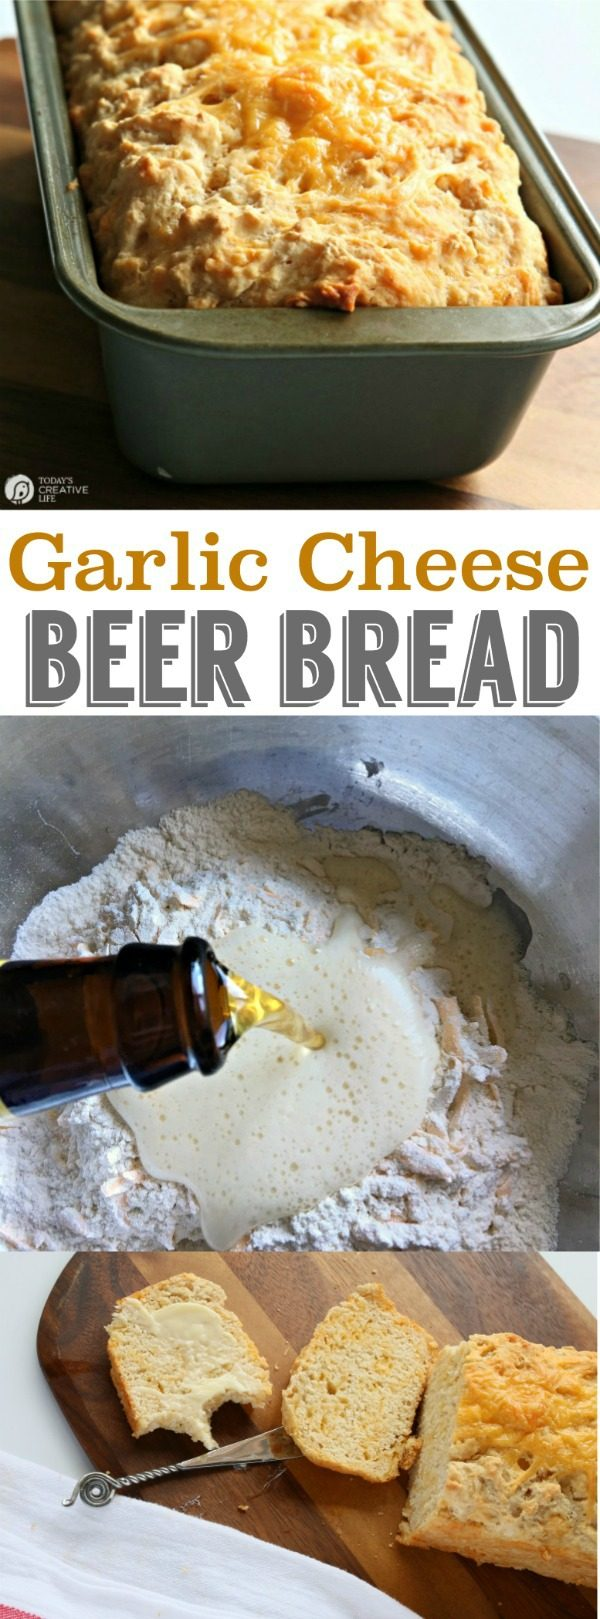 Beer Bread Recipe With Garlic And Cheese This Garlic Cheese Beer Bread Is Delicious